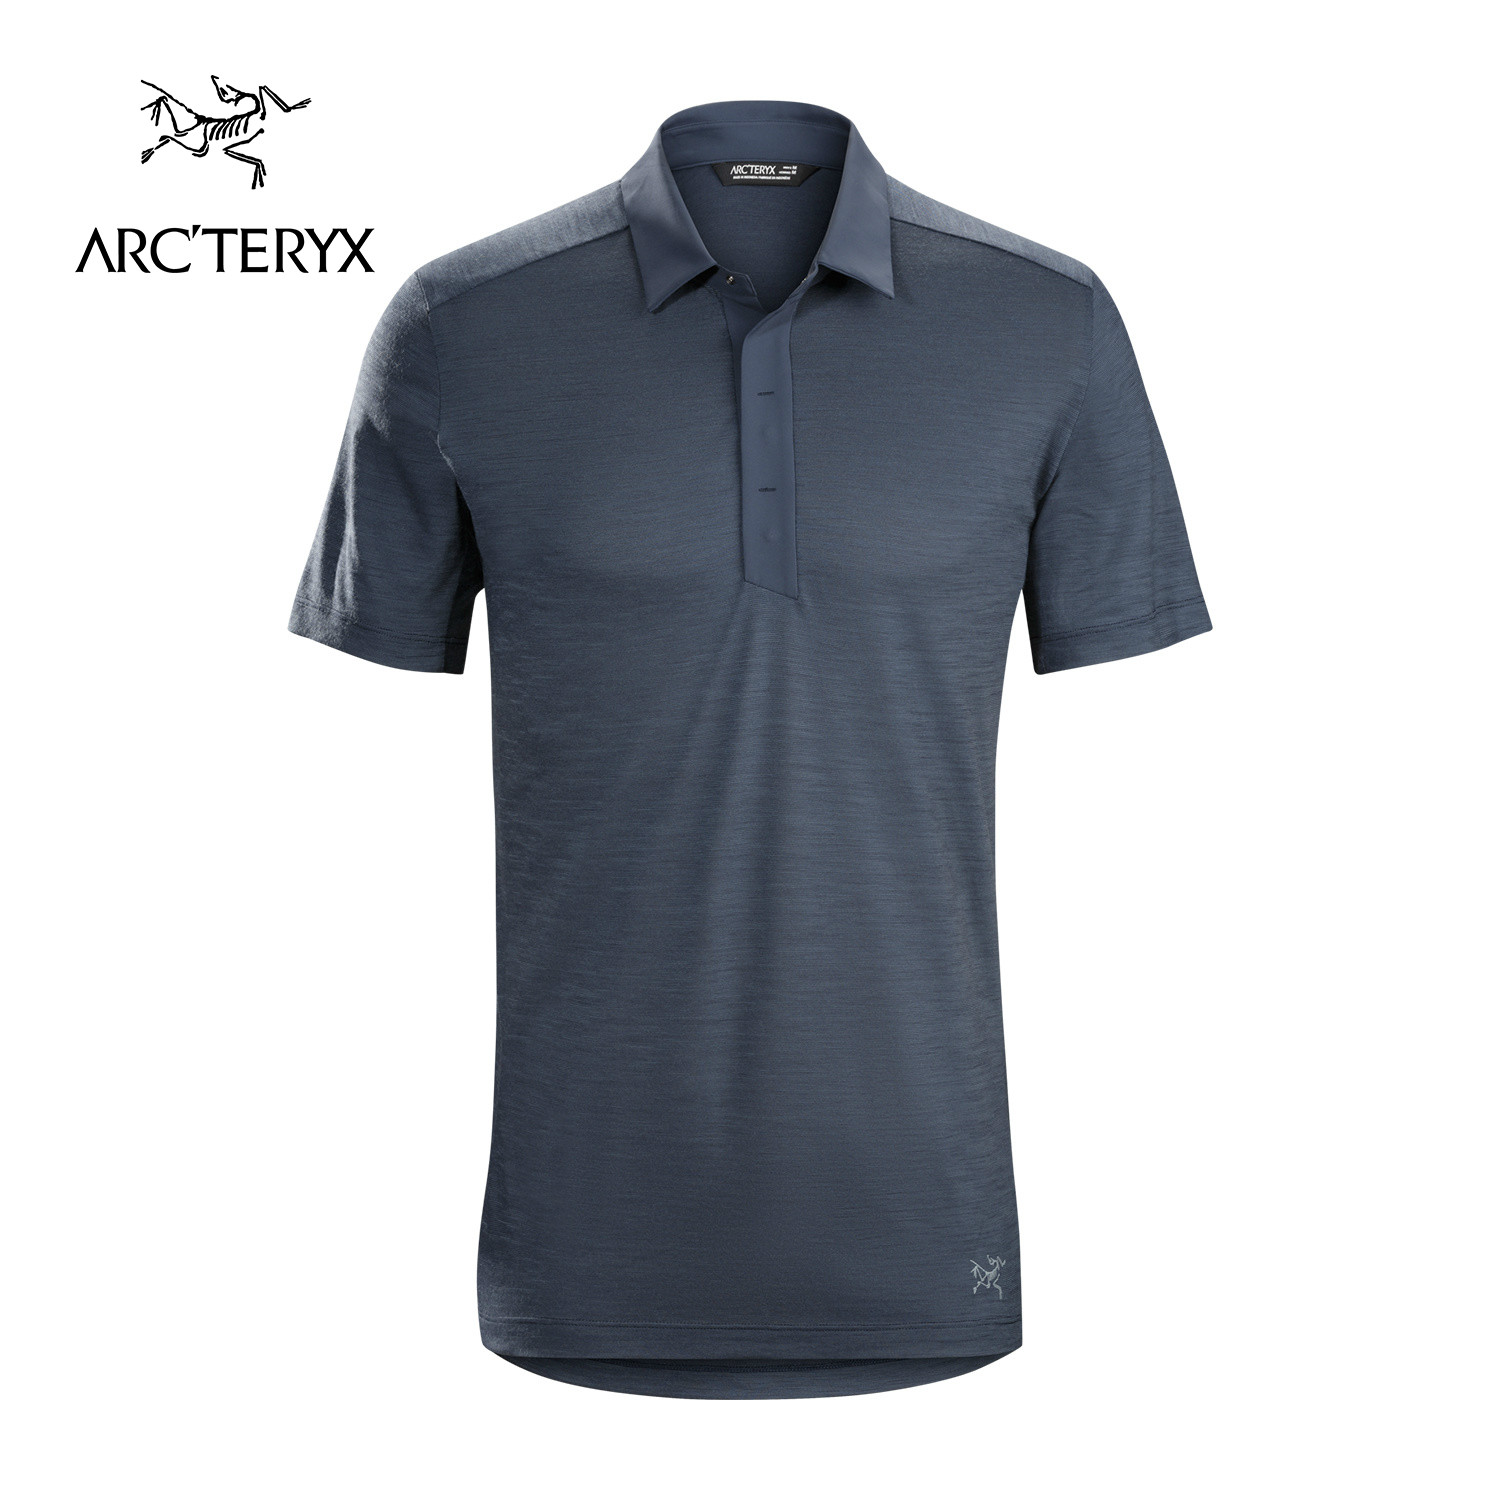 Usd 31464 Arcteryx Archaeopteryx Male Models Outdoor Short Sleeved